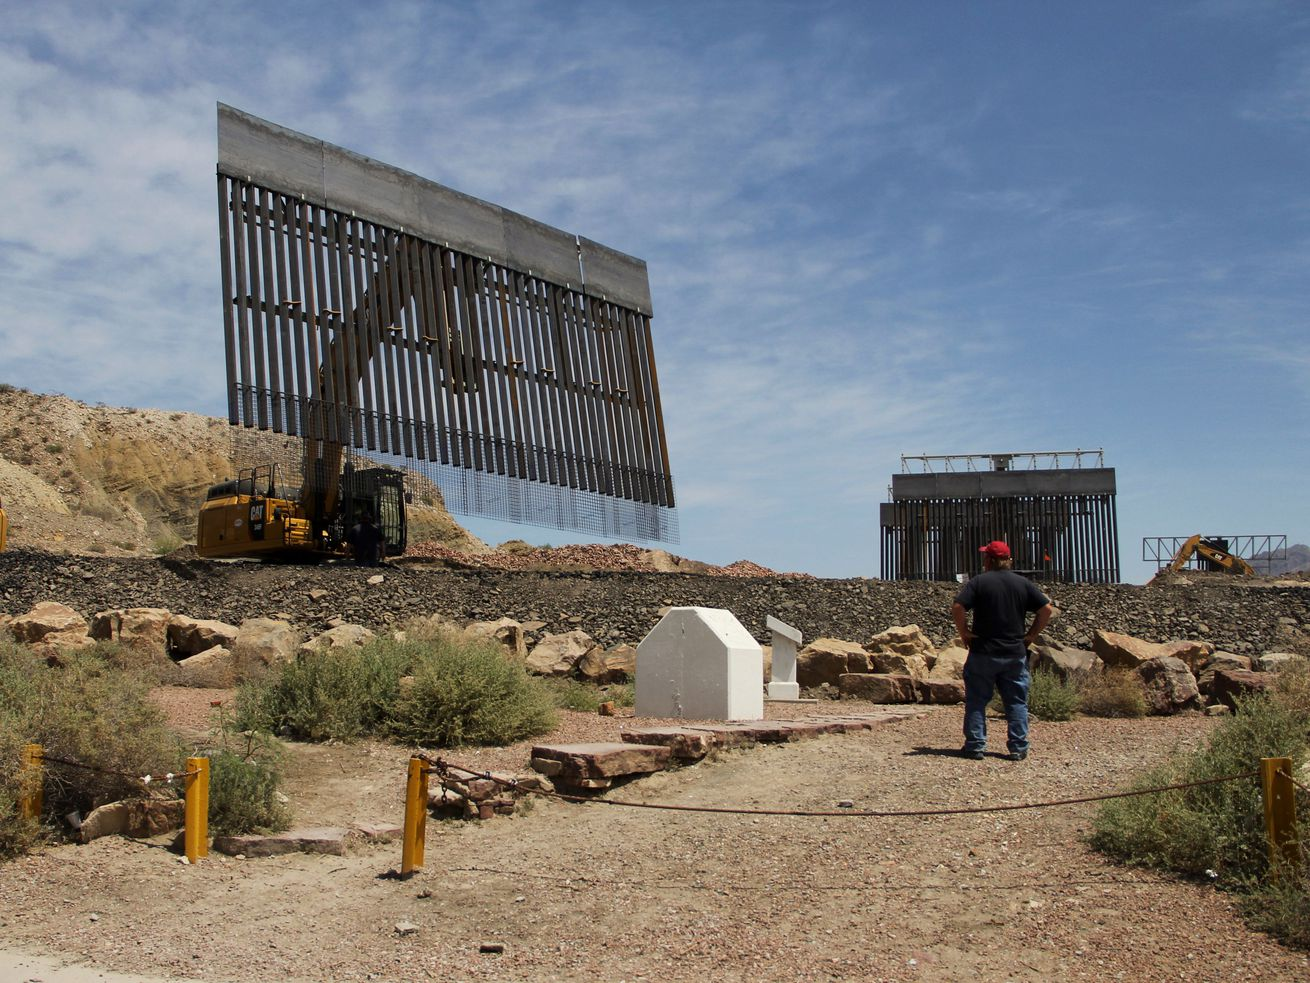 Cranes lift sections of border wall as a man in a red cap looks on.